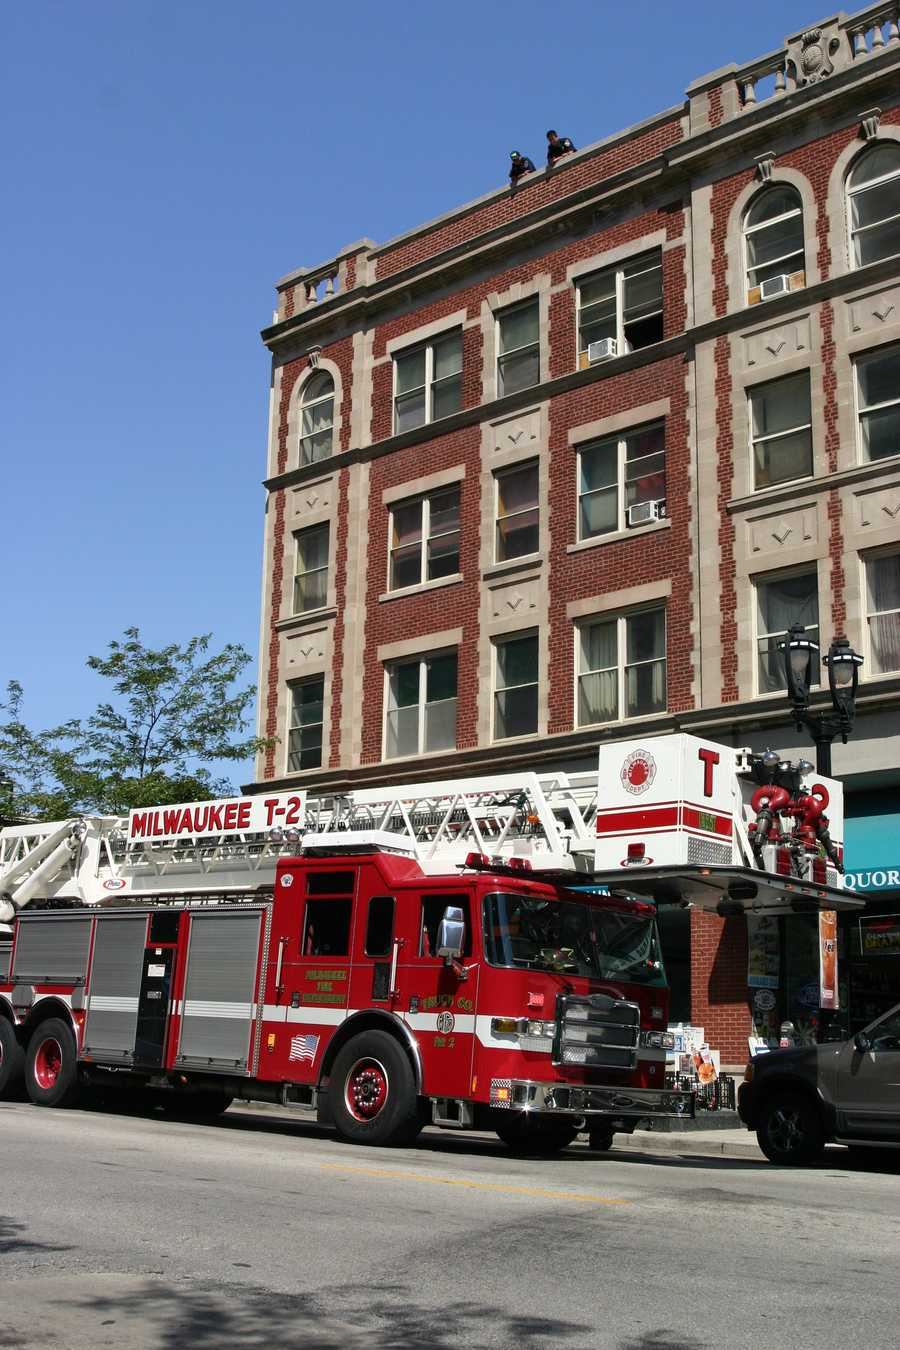 No real roof access on this building so they enlisted the help of the Milwaukee Fire Department.